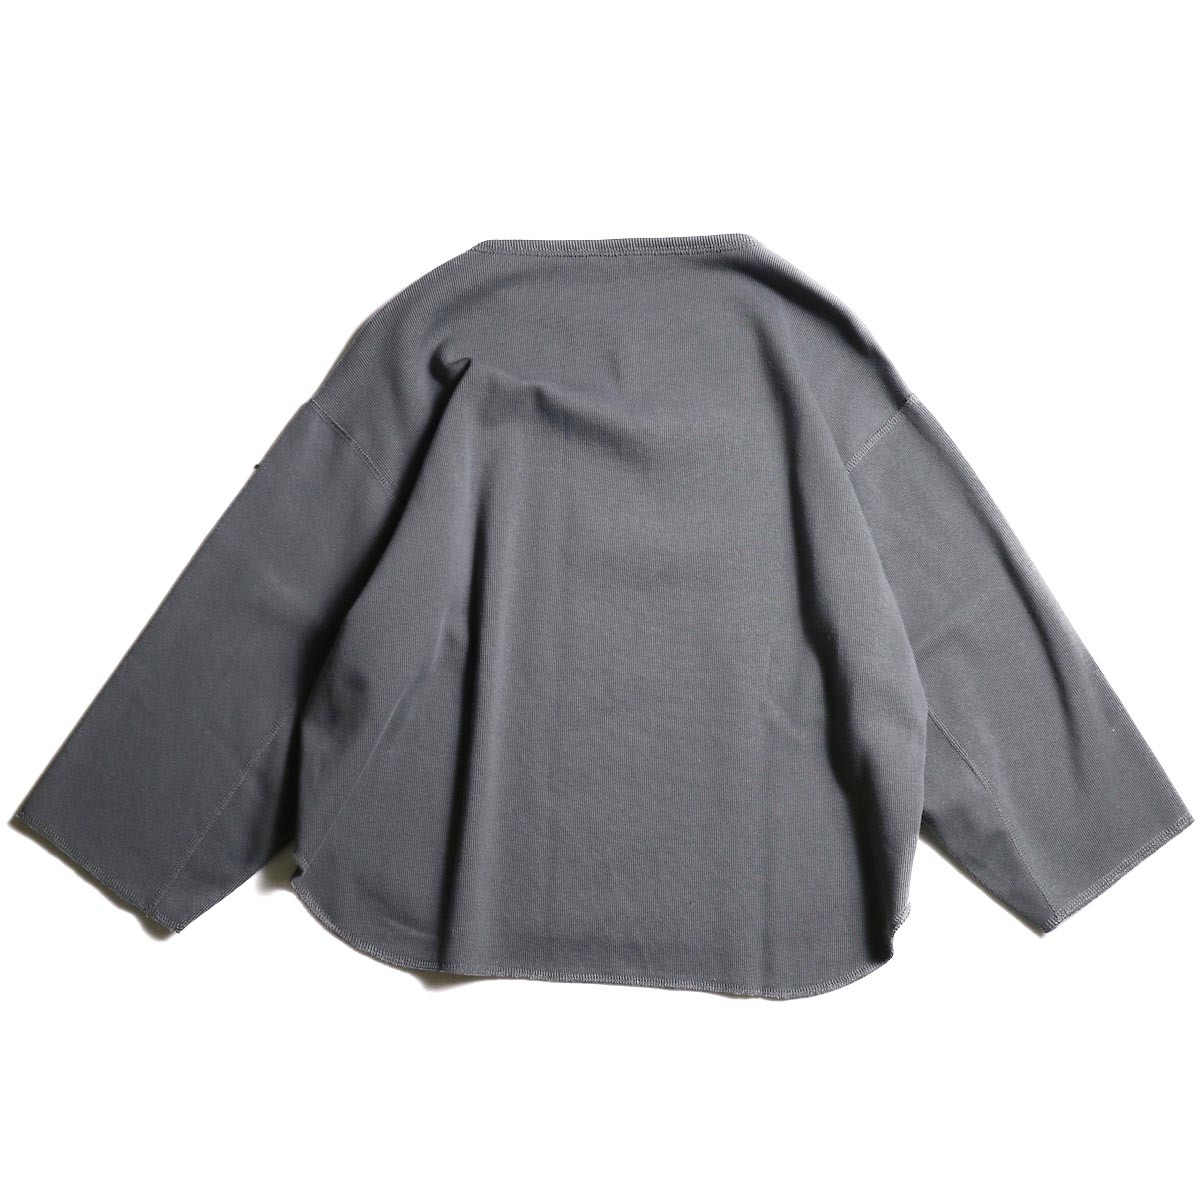 YLEVE / Cotton Rib Pullover (Slate Gray)背面